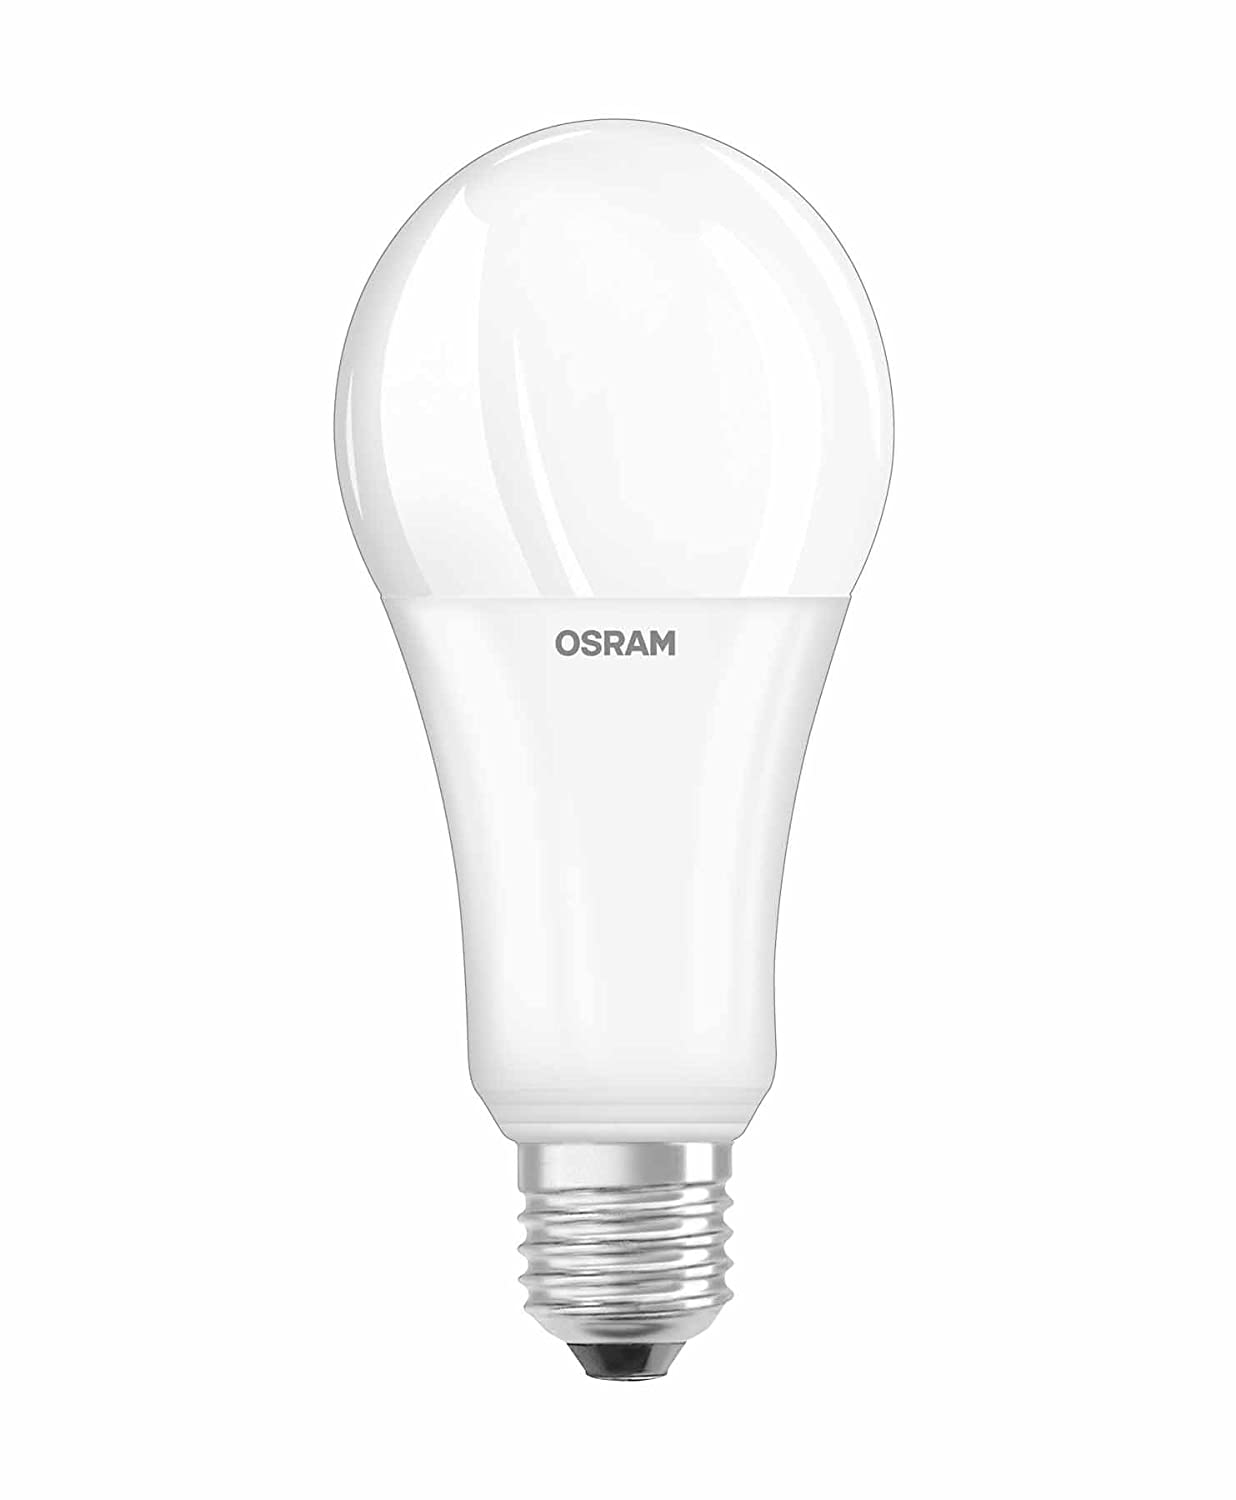 osram led superstar ampoule led forme classique culot e27 dimmable 21w ebay. Black Bedroom Furniture Sets. Home Design Ideas